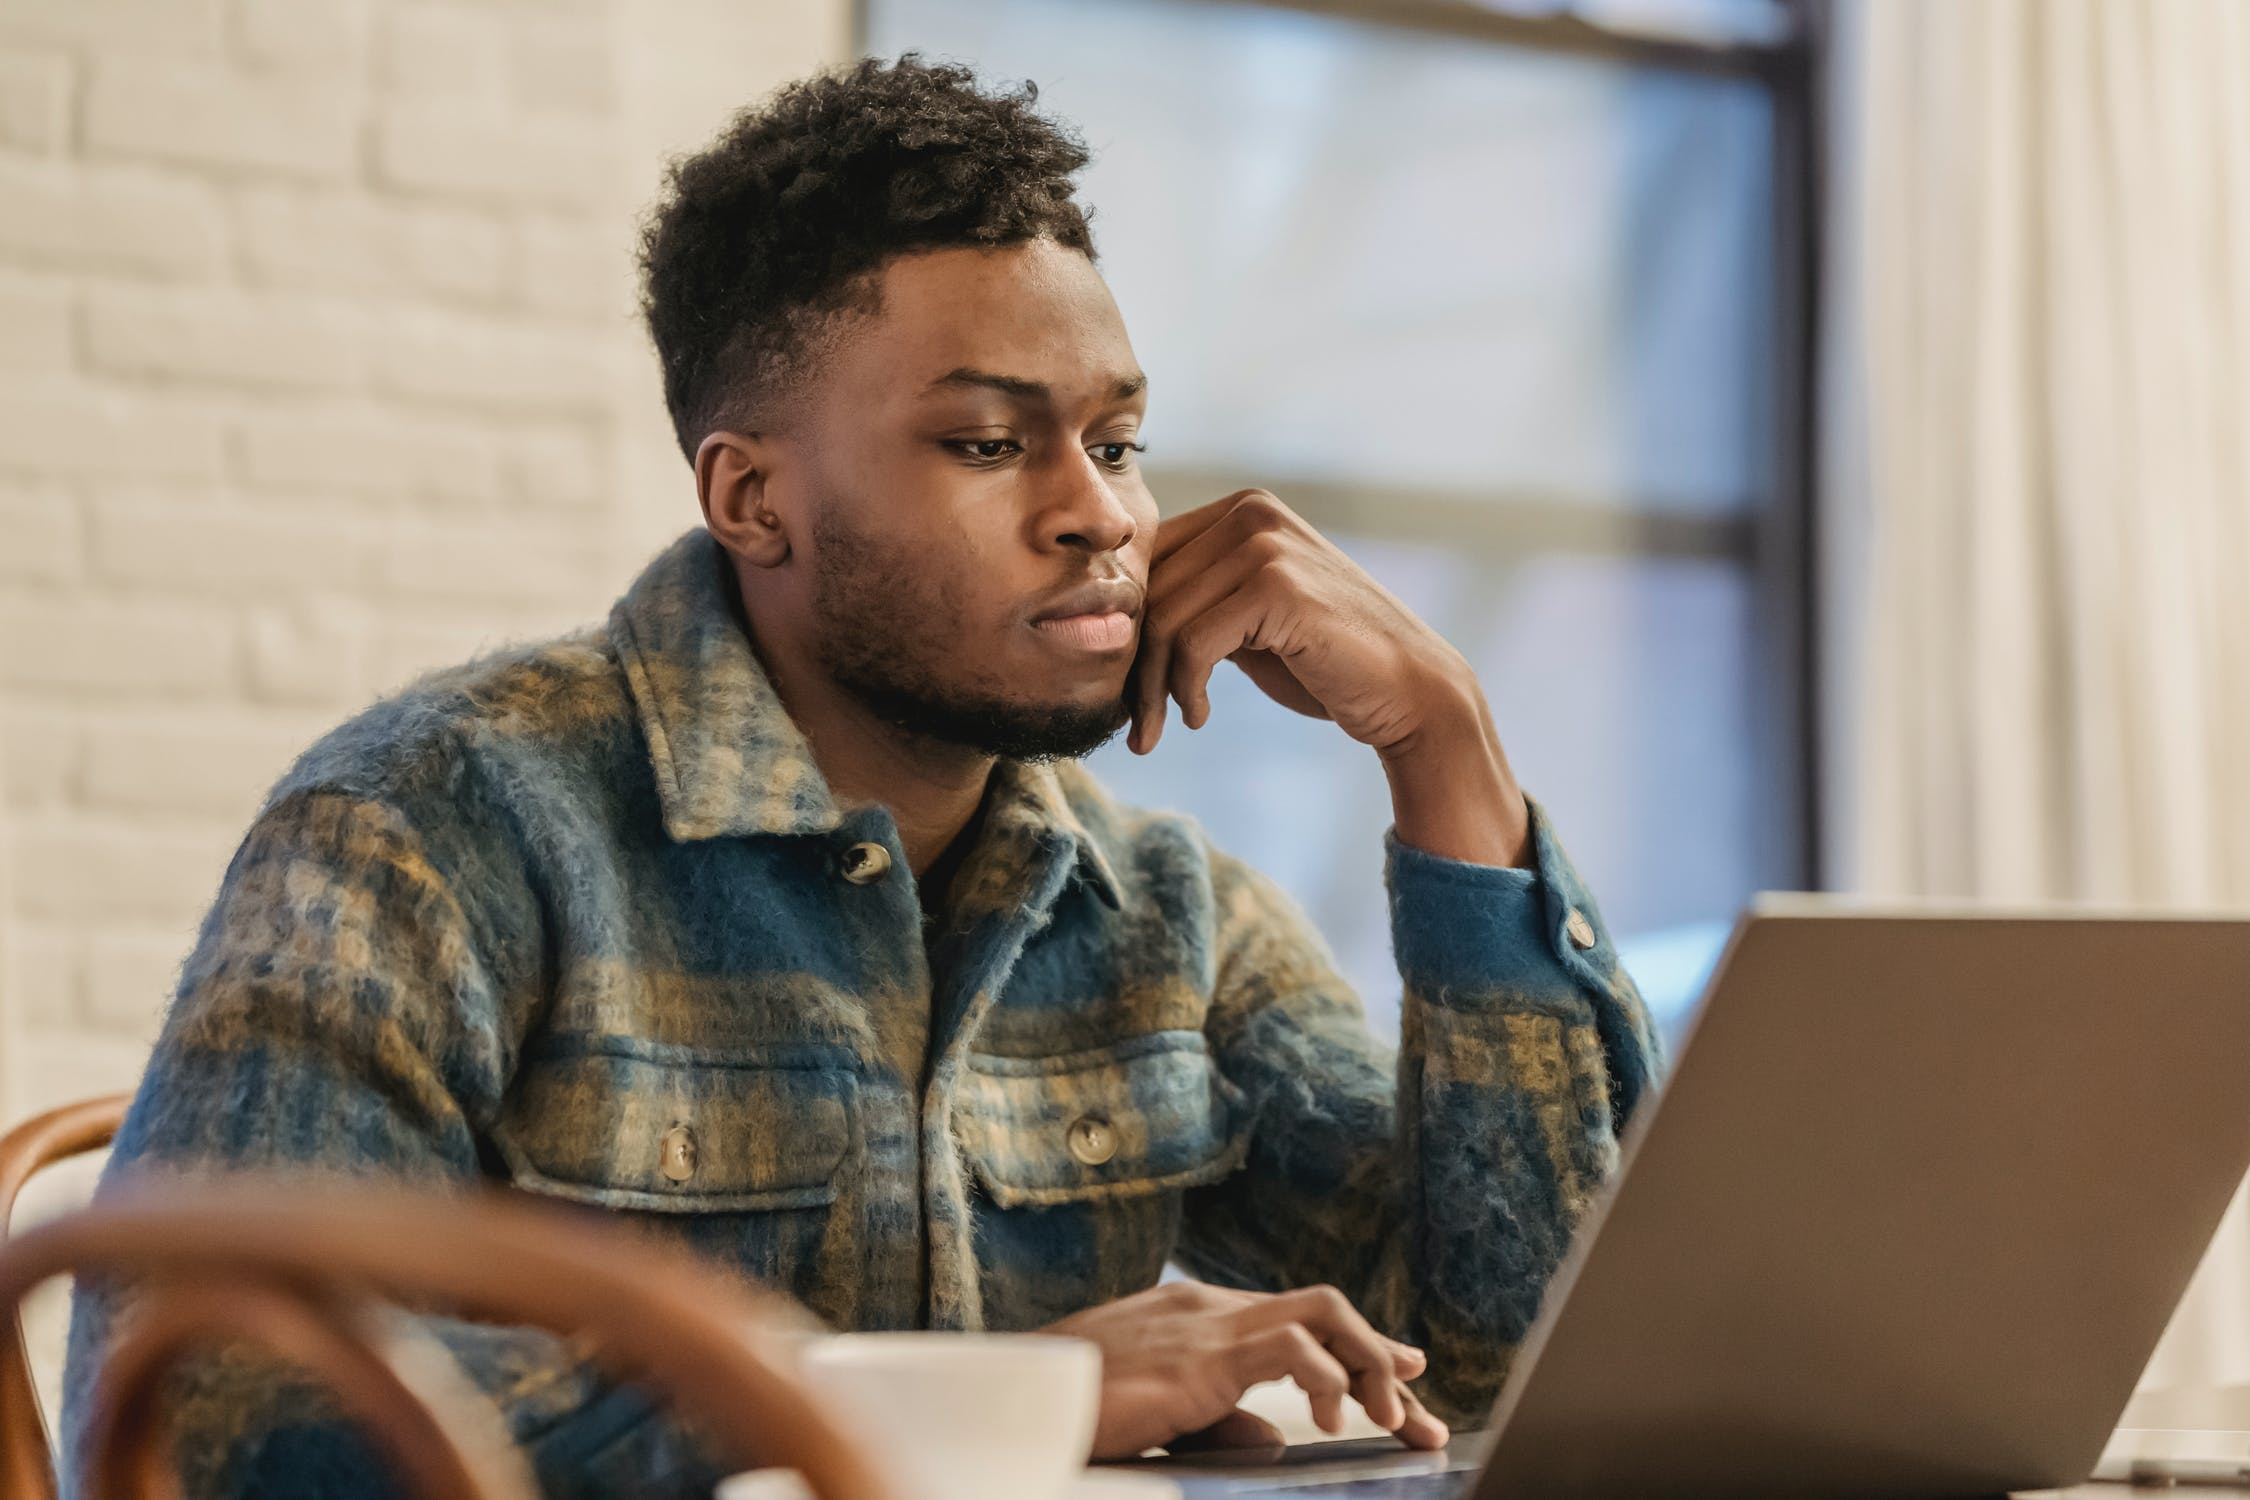 man sitting with his hand on his chin looking at computer